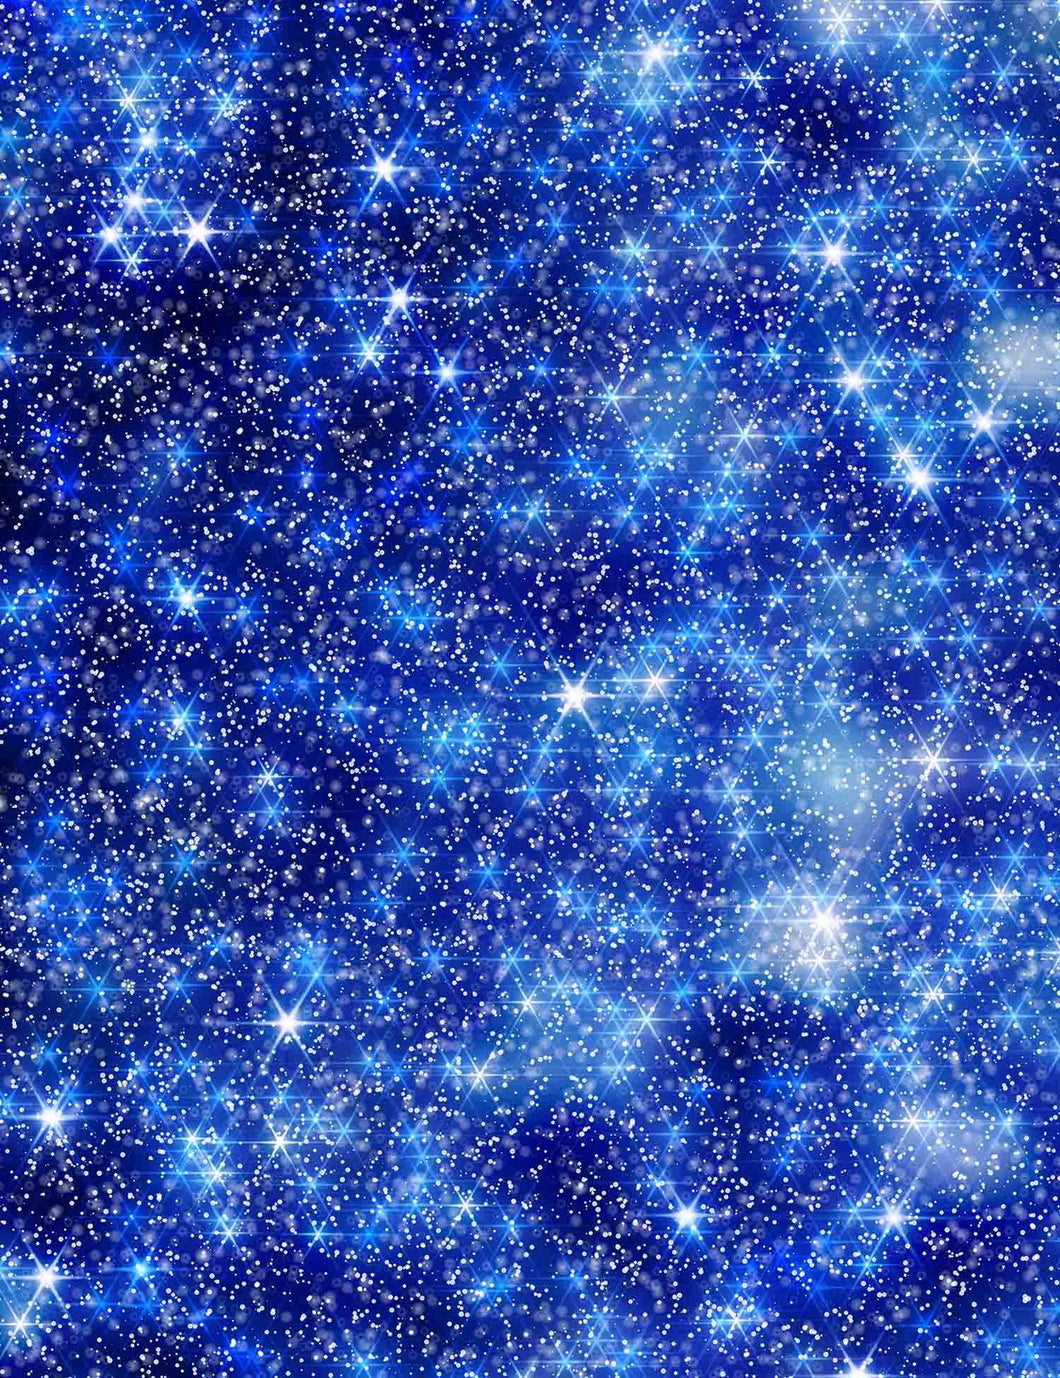 Deep Blue Sparkles Bokeh Printed Photography Backdrop - Shop Backdrop